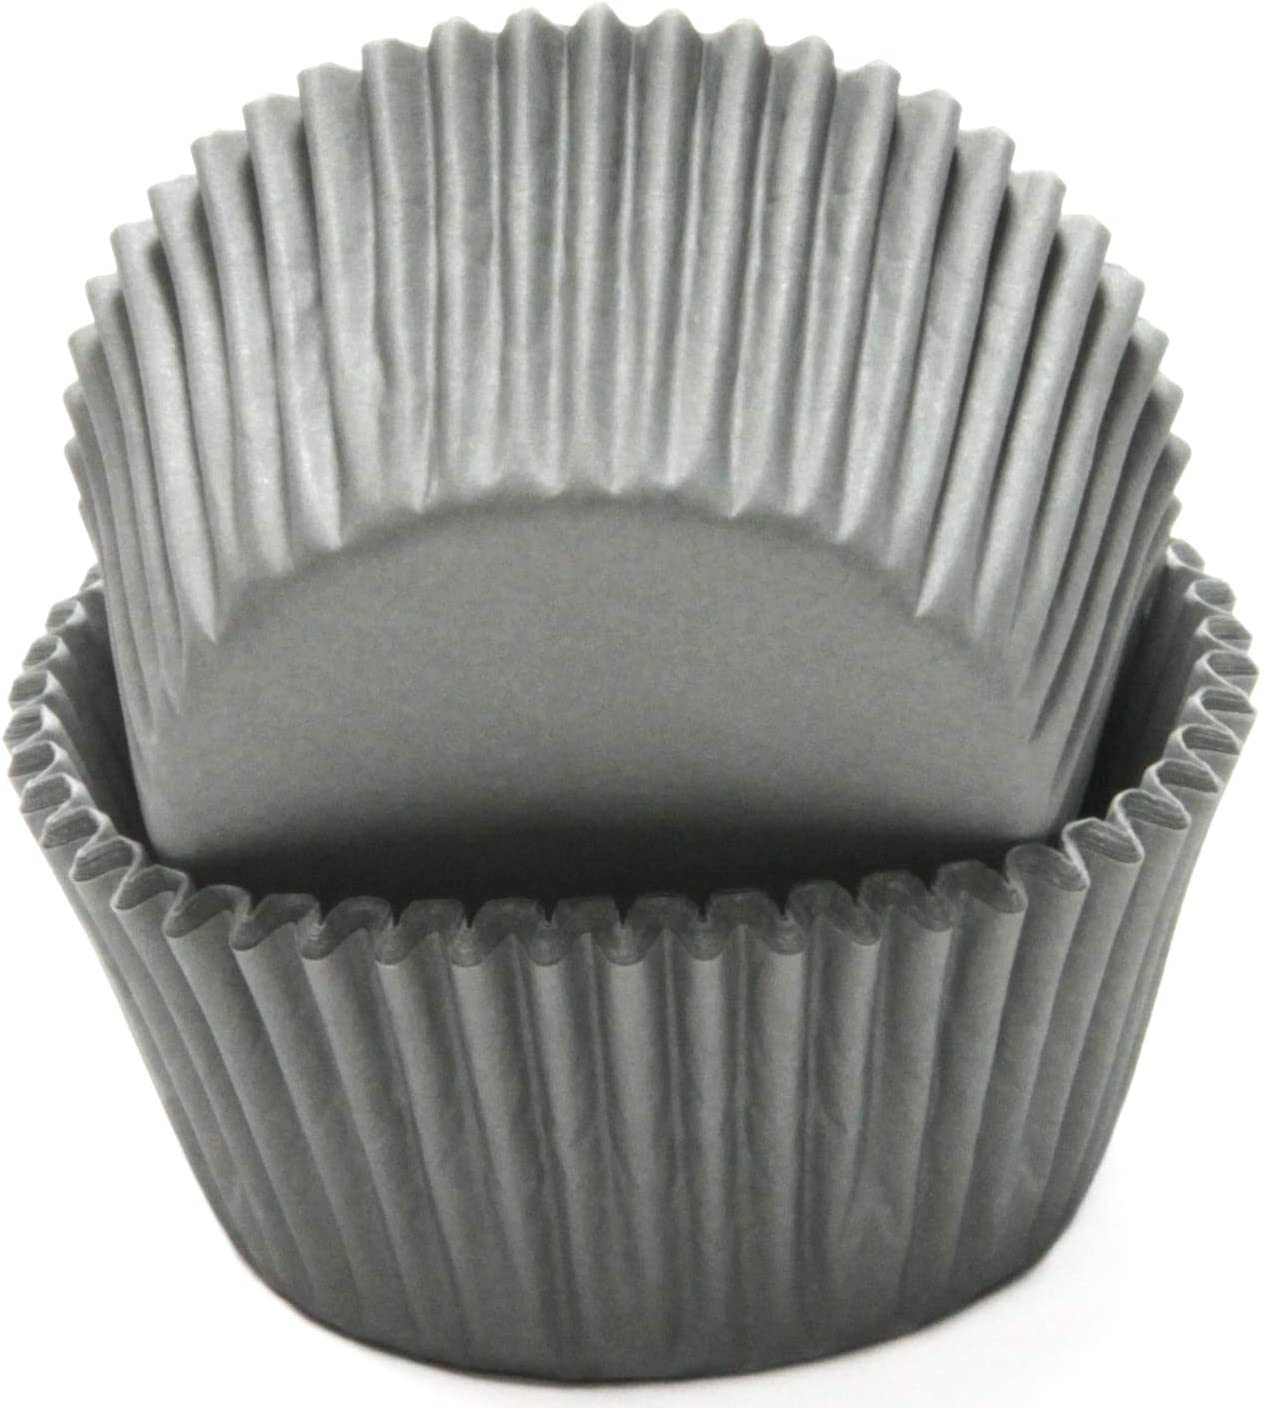 Chef Craft Classic Cupcake Liners, 50 count, Grey